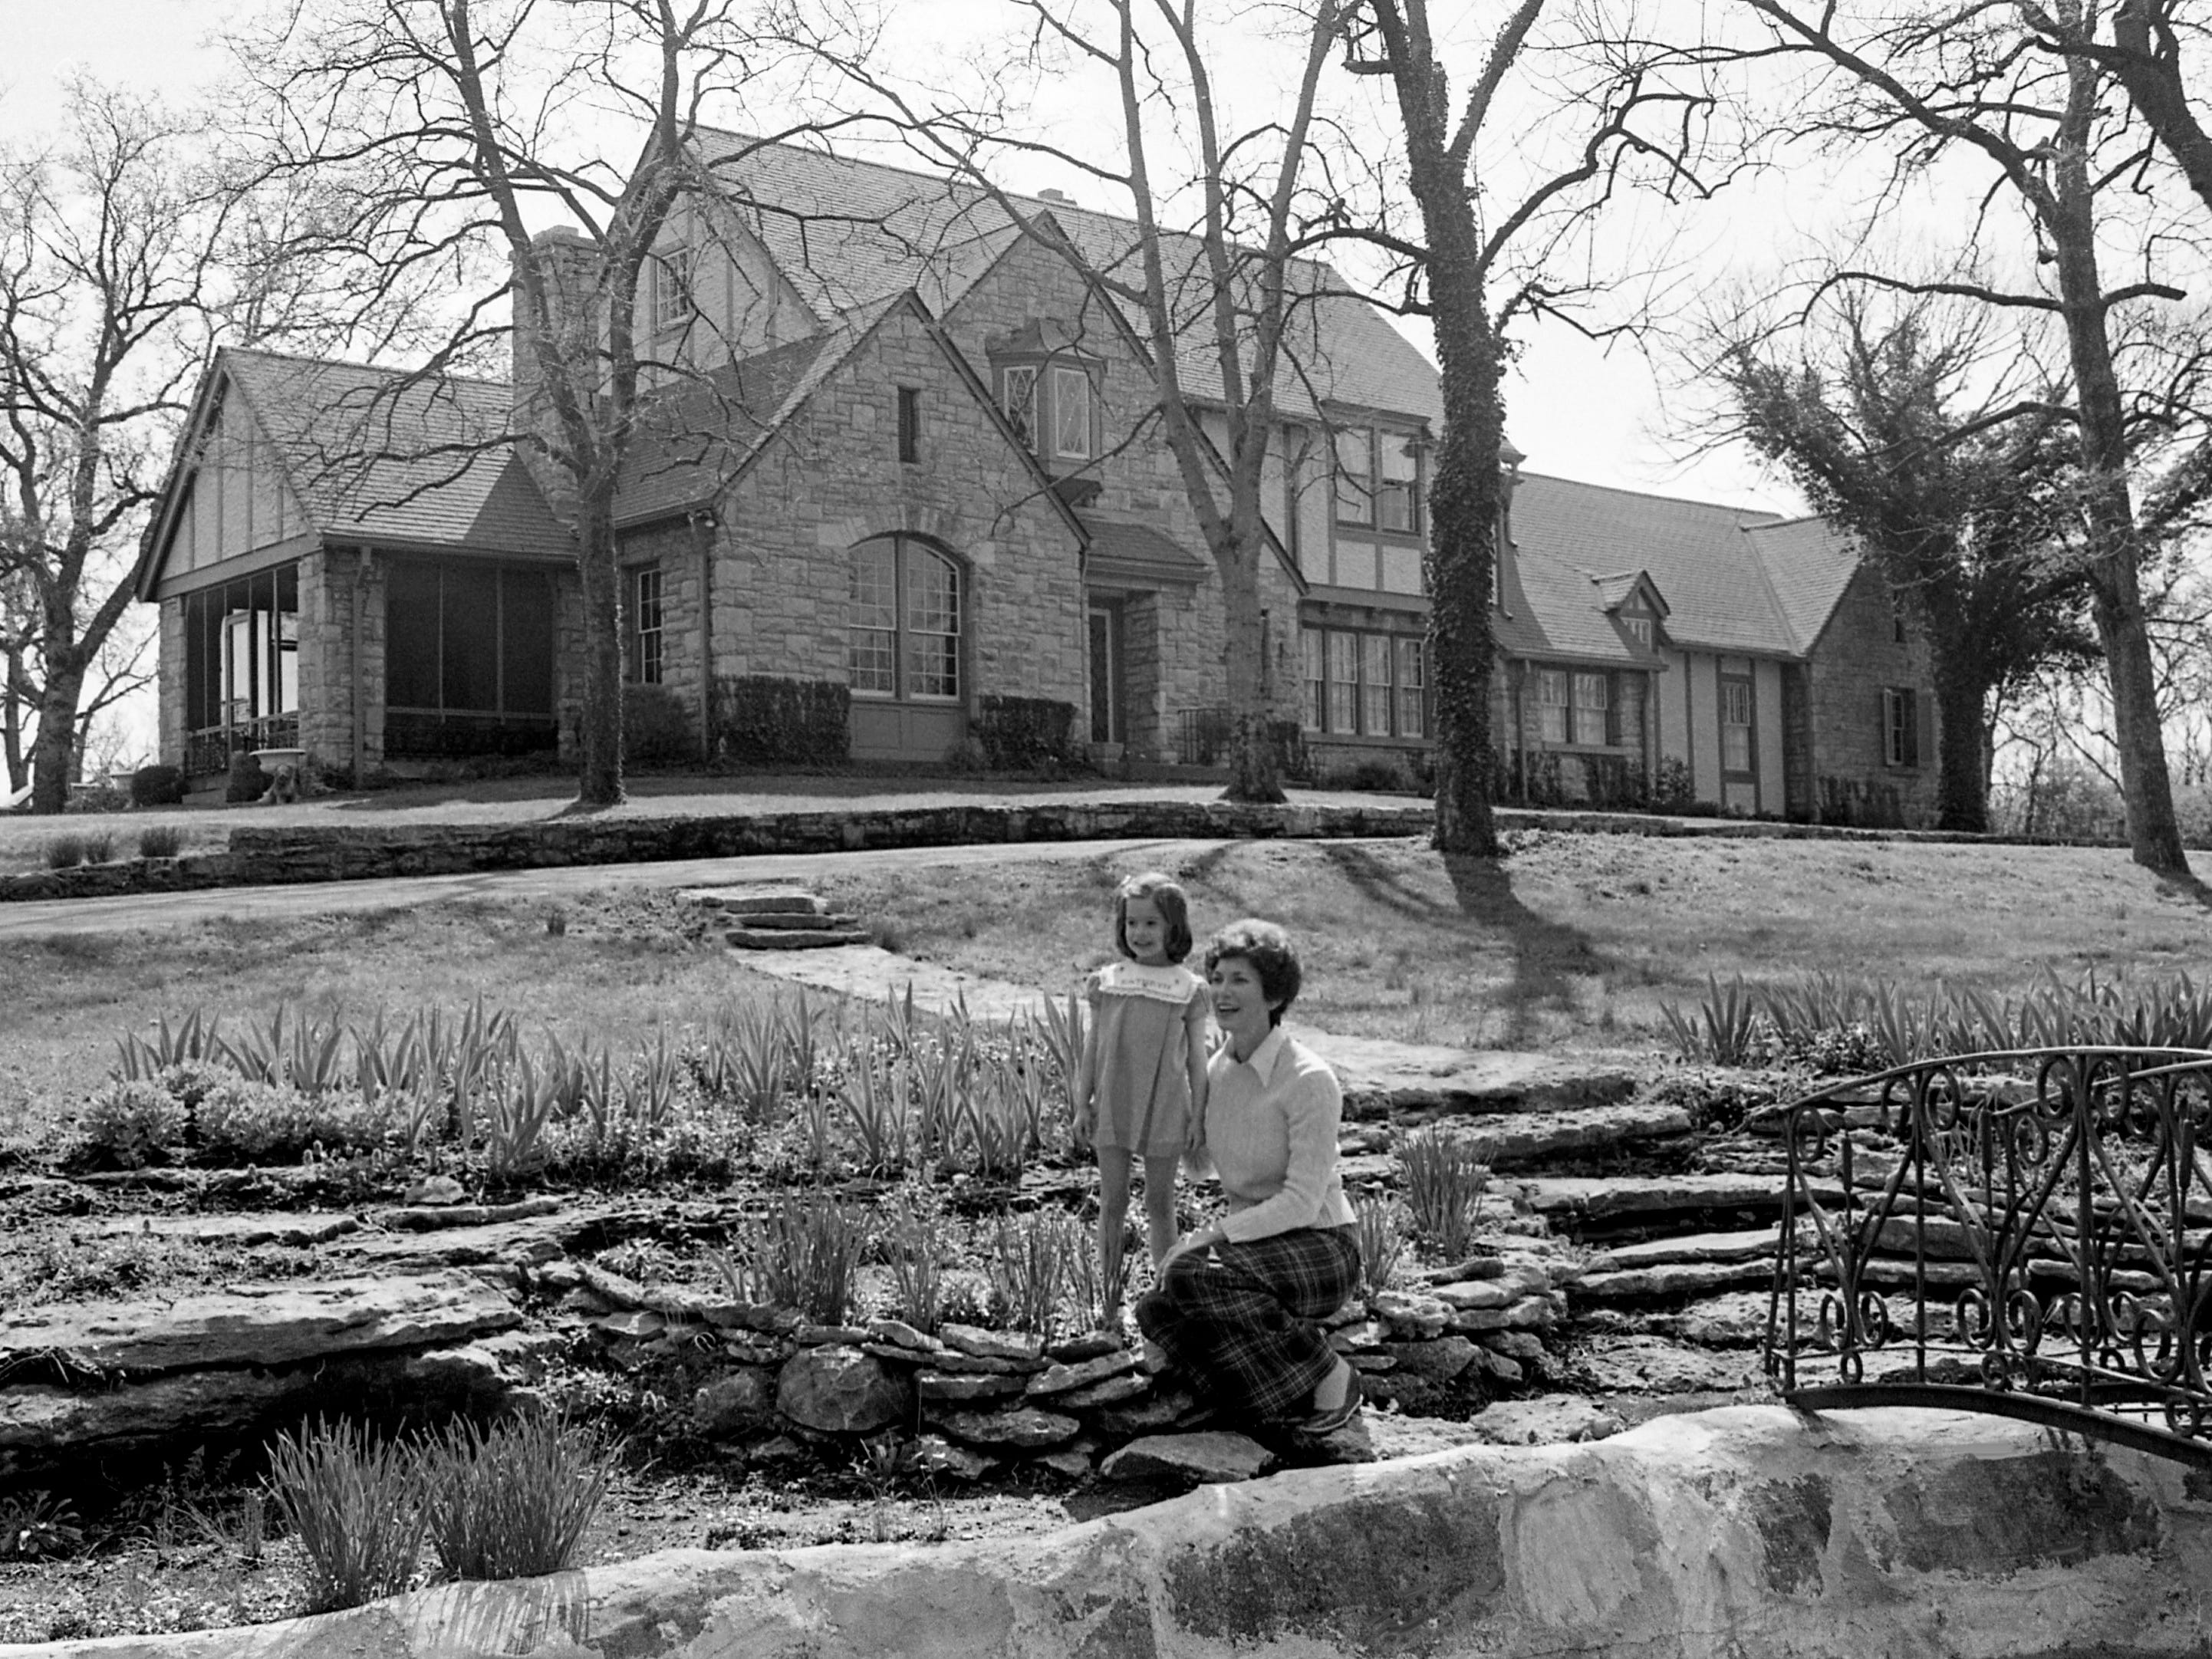 Mrs. Thompson B. Patterson and daughter Kathryn look at the spring plants April 3, 2979, in their English garden built into the original breastworks dug for the Battle of Nashville. The classic stone and timber house, Windycrest, at 1811 Woodmont Blvd., will be open to the public on the Historic Belmont Tour of Homes on April 25.